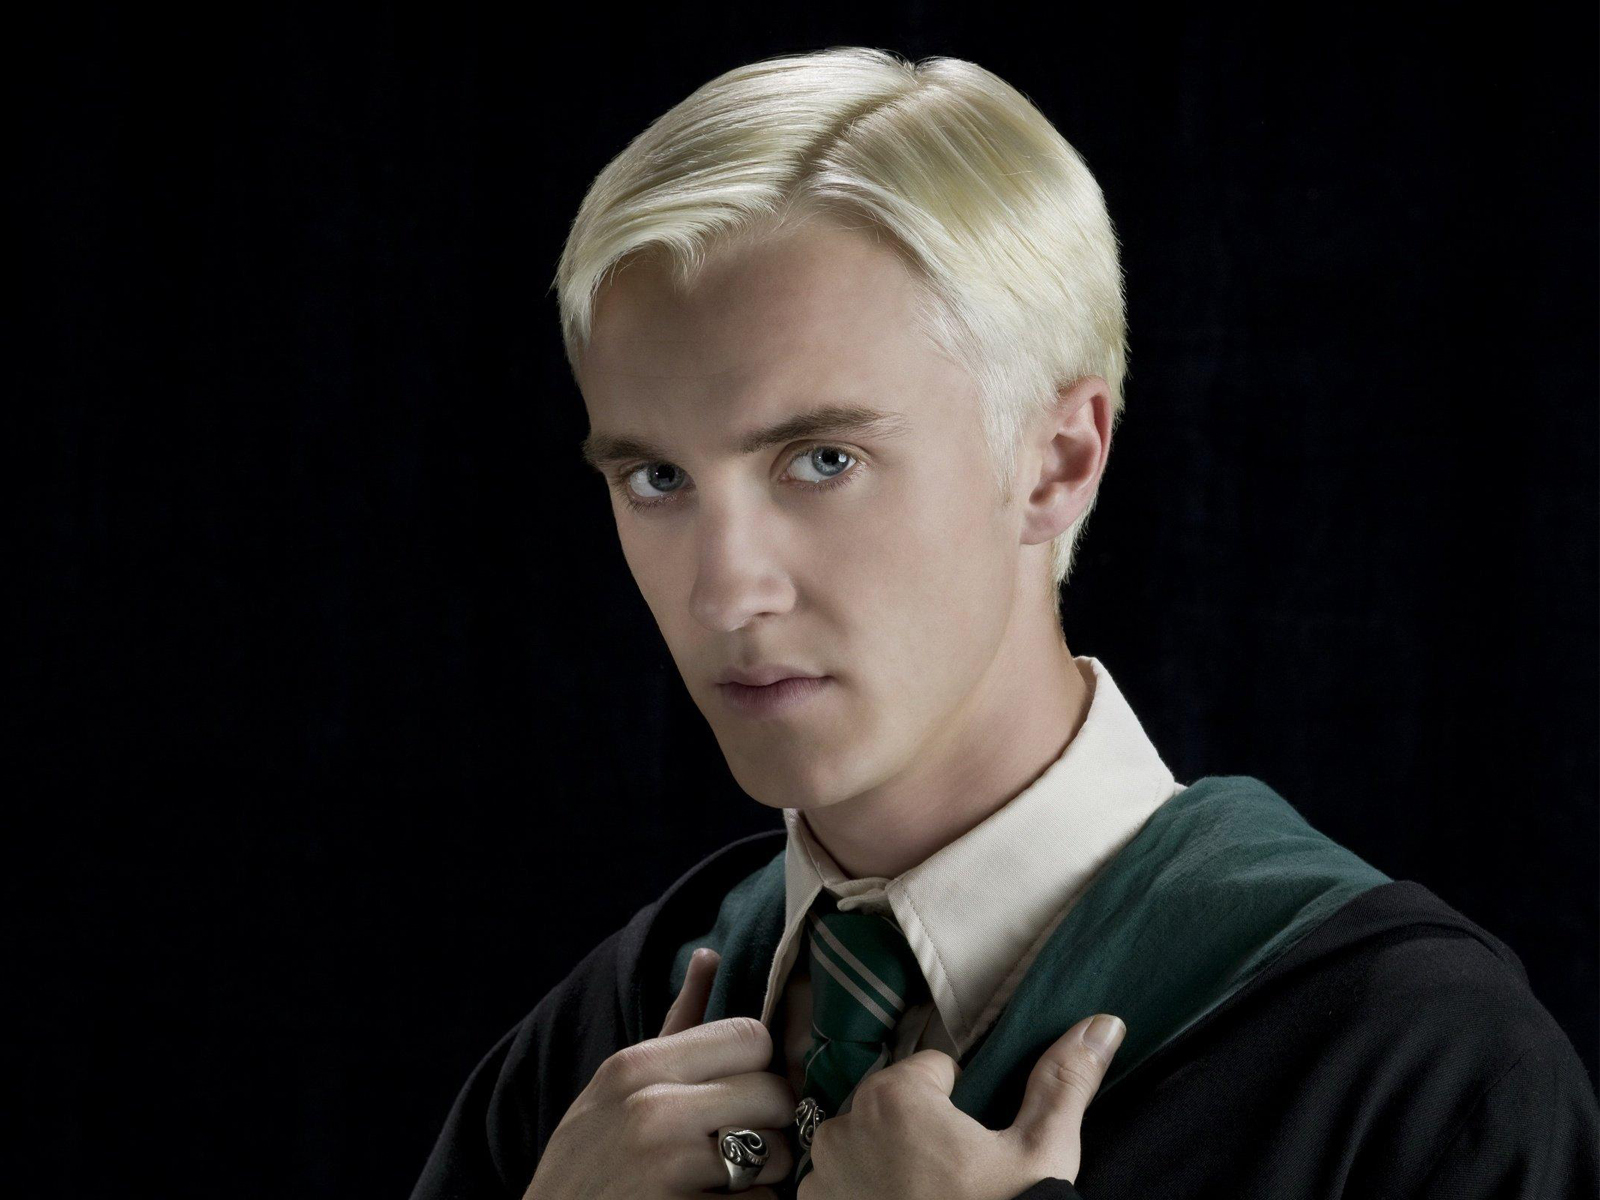 tom felton computer wallpaper 58133